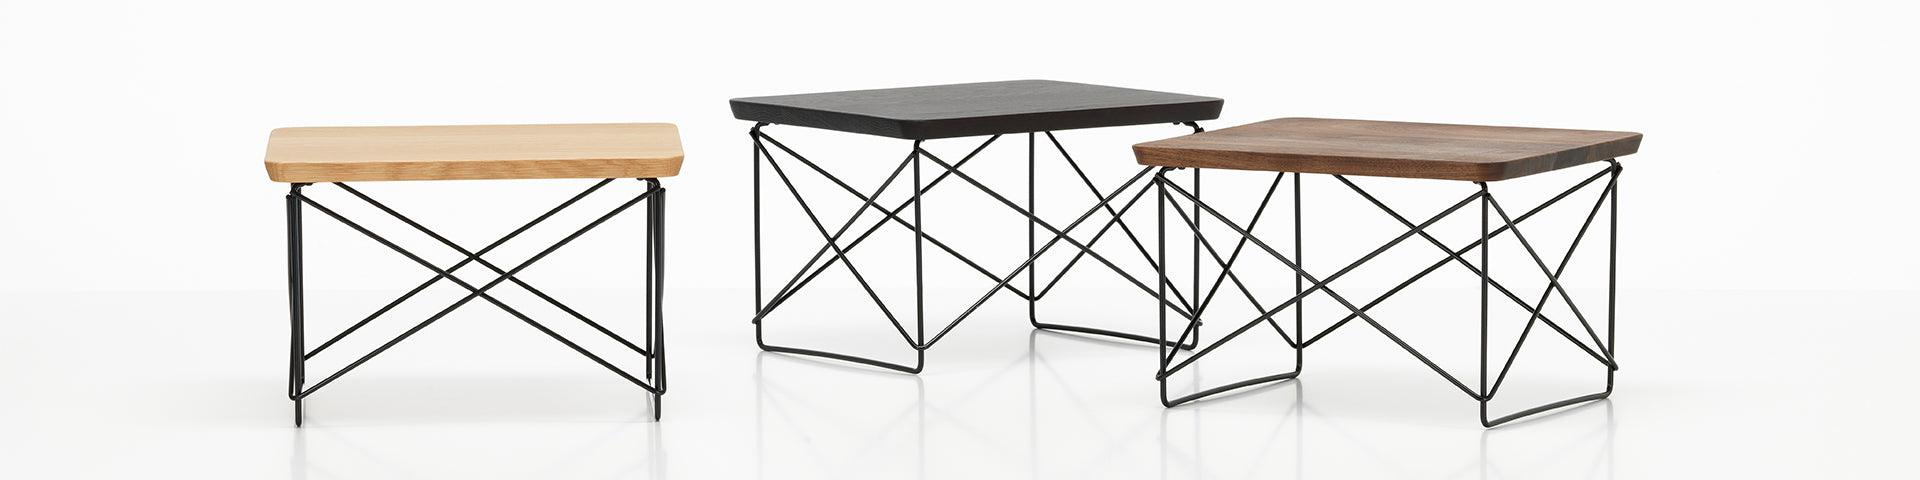 Eames LTR occasional table, 1950